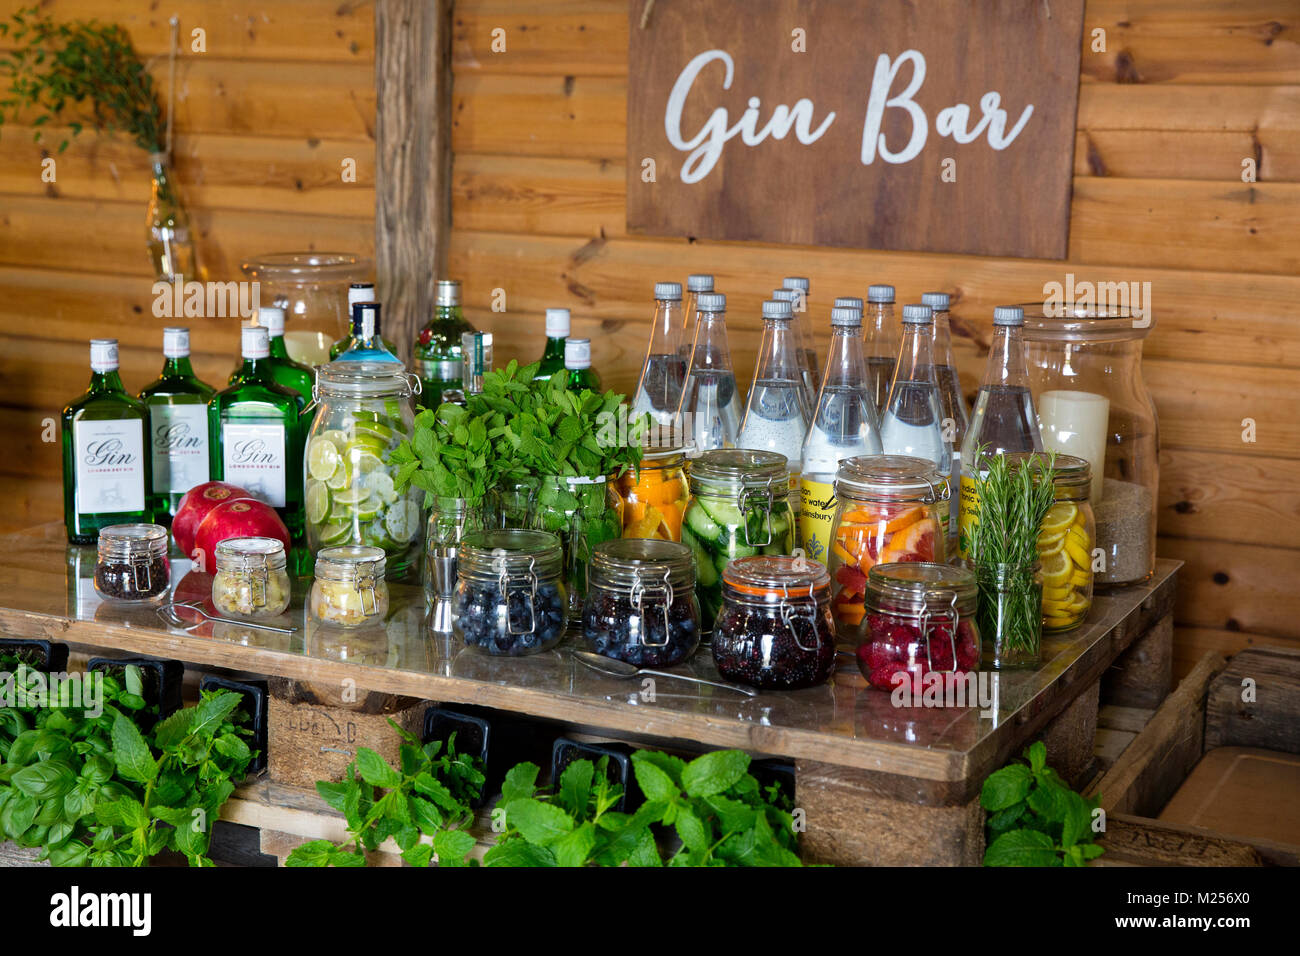 Gin bar in barn with bottled gin, tonic water and jars - Stock Image